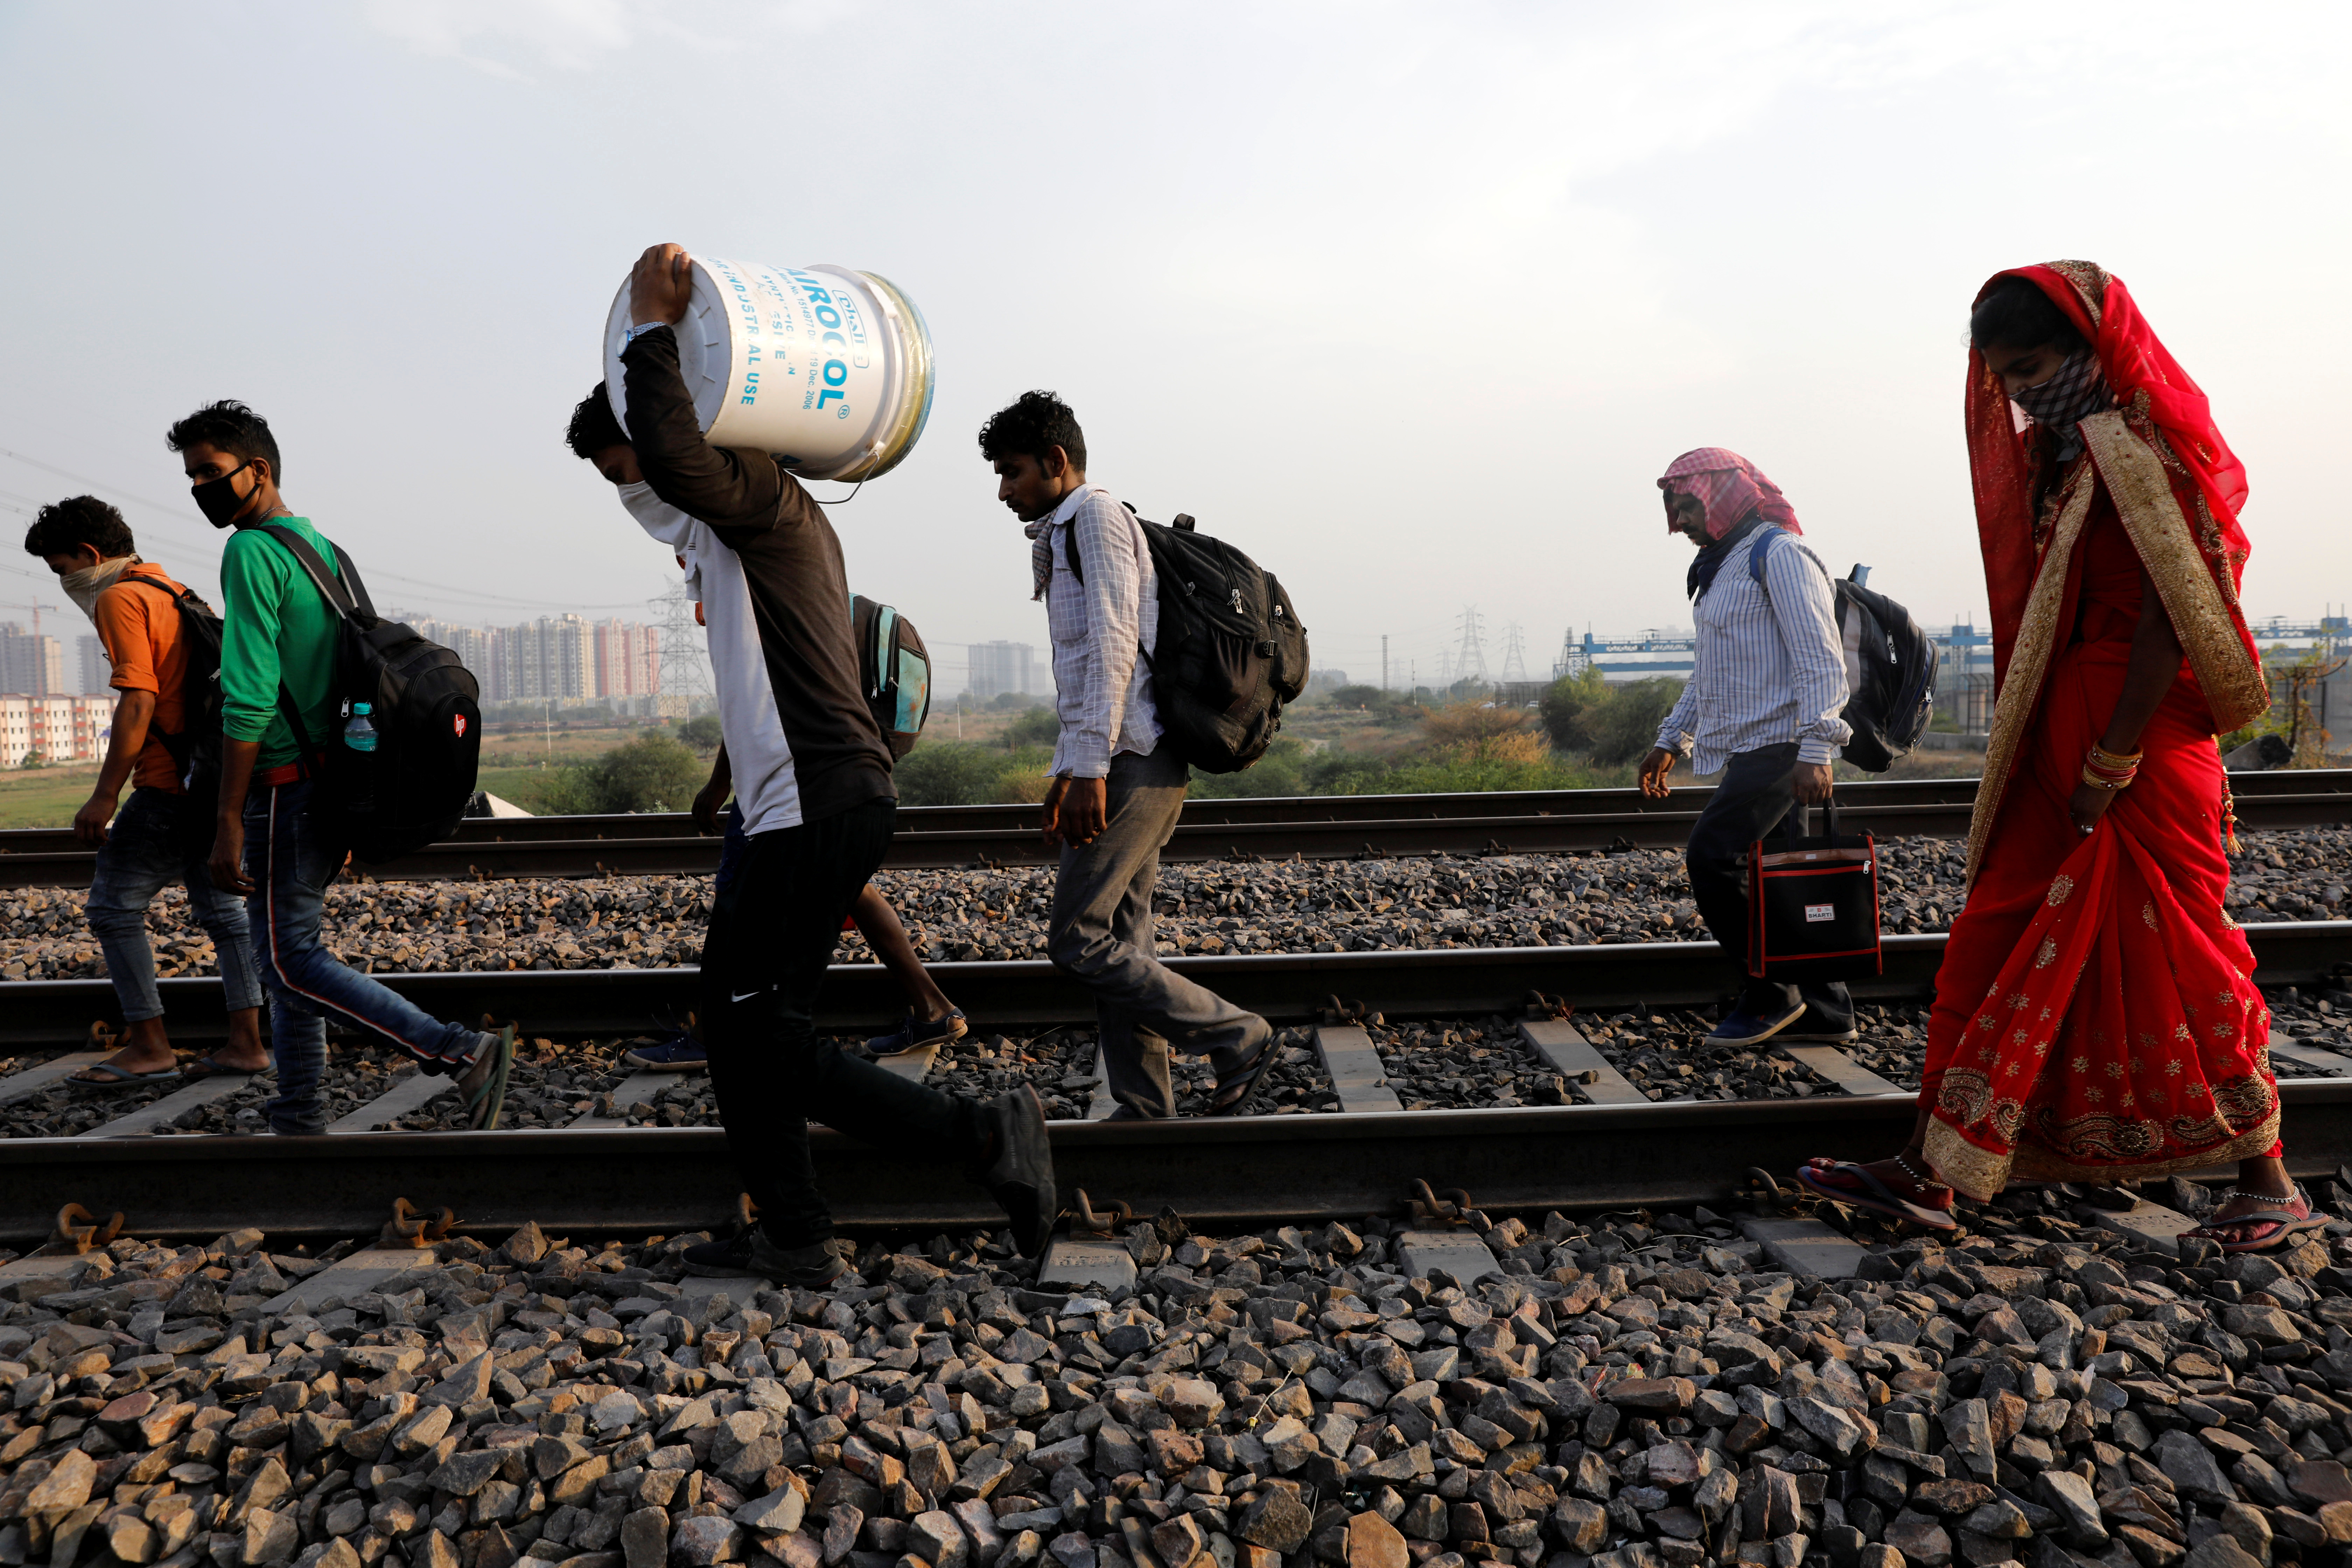 Migrant workers with their faces covered and carrying their belongings, walk along a railway track to return to their home state of eastern Bihar, during an extended nationwide lockdown to slow the spread of the coronavirus disease (COVID-19), in Ghaziabad, in the outskirts of New Delhi, India, May 13, 2020. REUTERS/Adnan Abidi